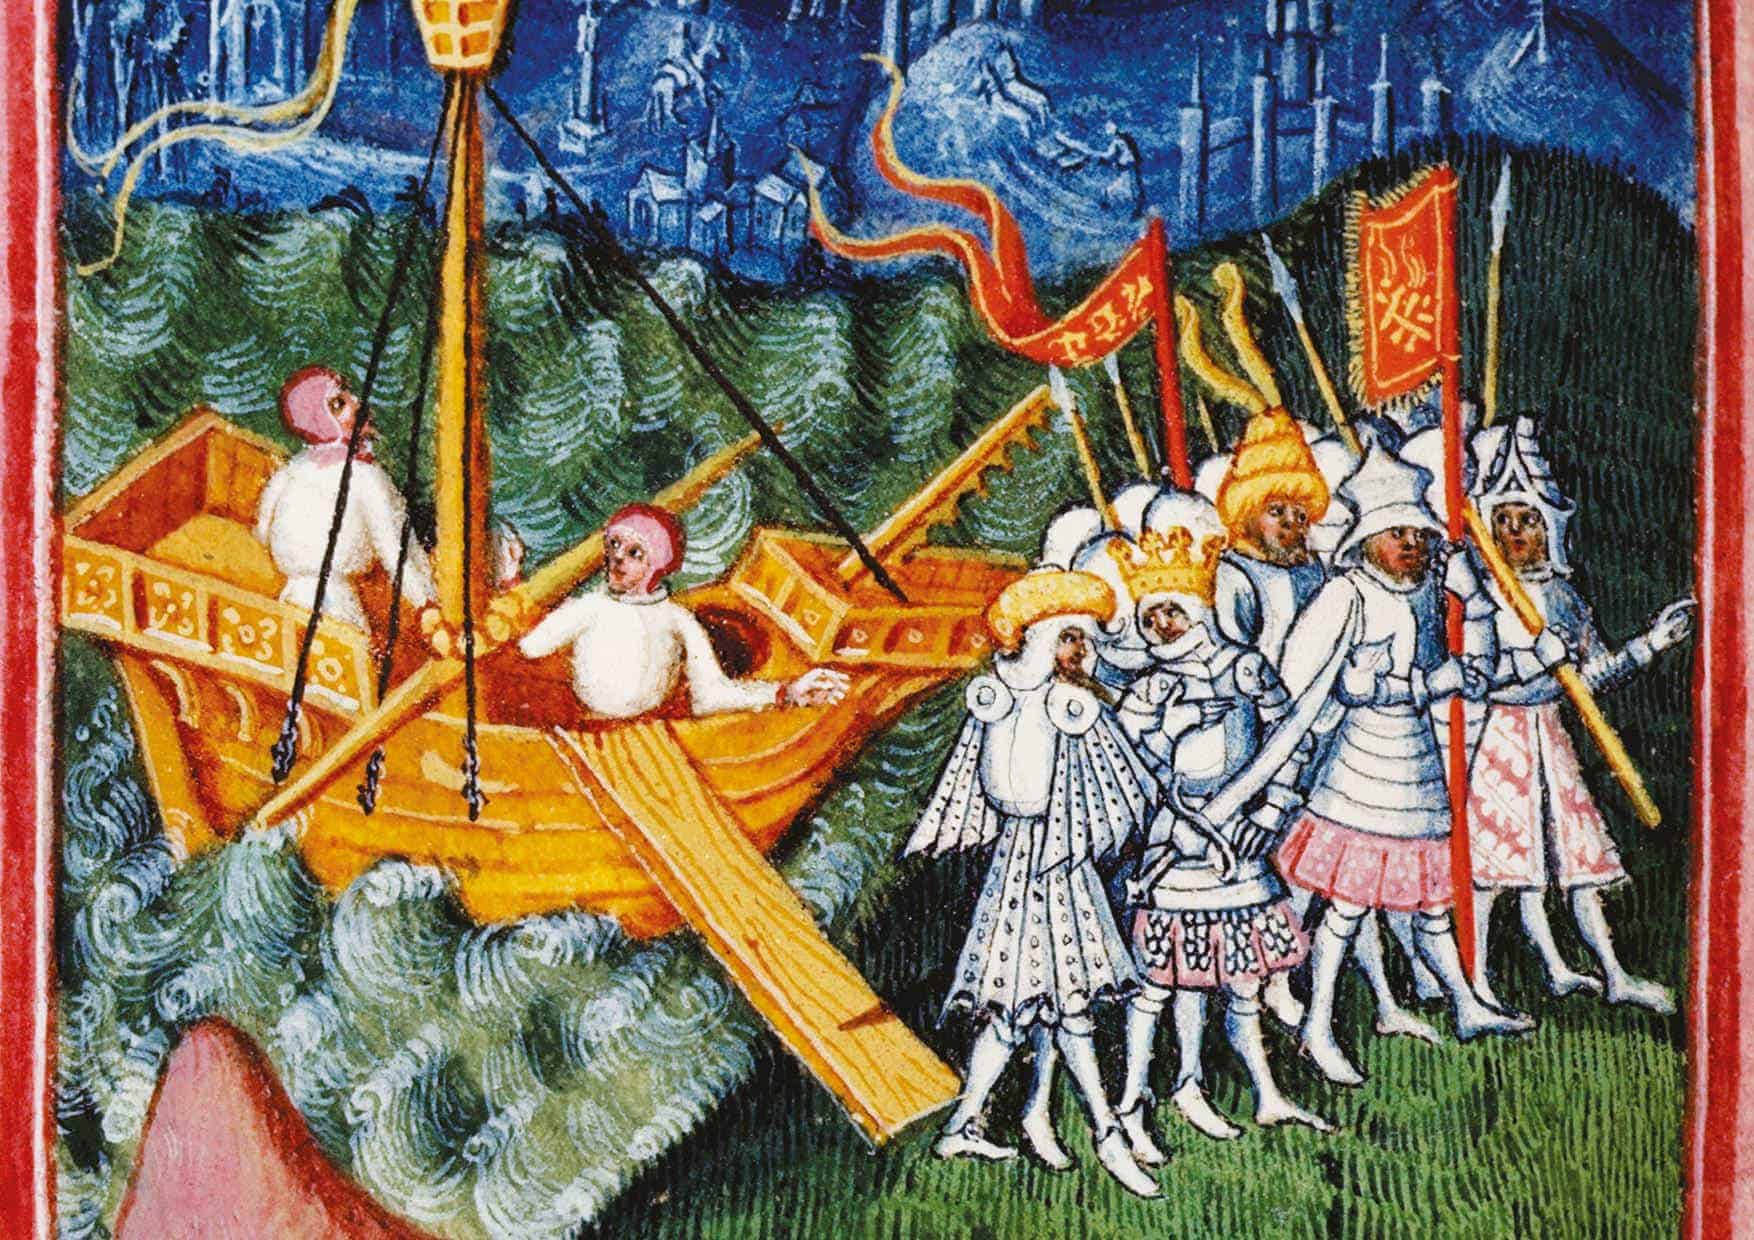 Svein ankommer England på en illustrasjon fra Lives of Saints Edmund and Fremund (1434–44). Danskens mål var å kue engelskmennene med frykt – og strategien virket.